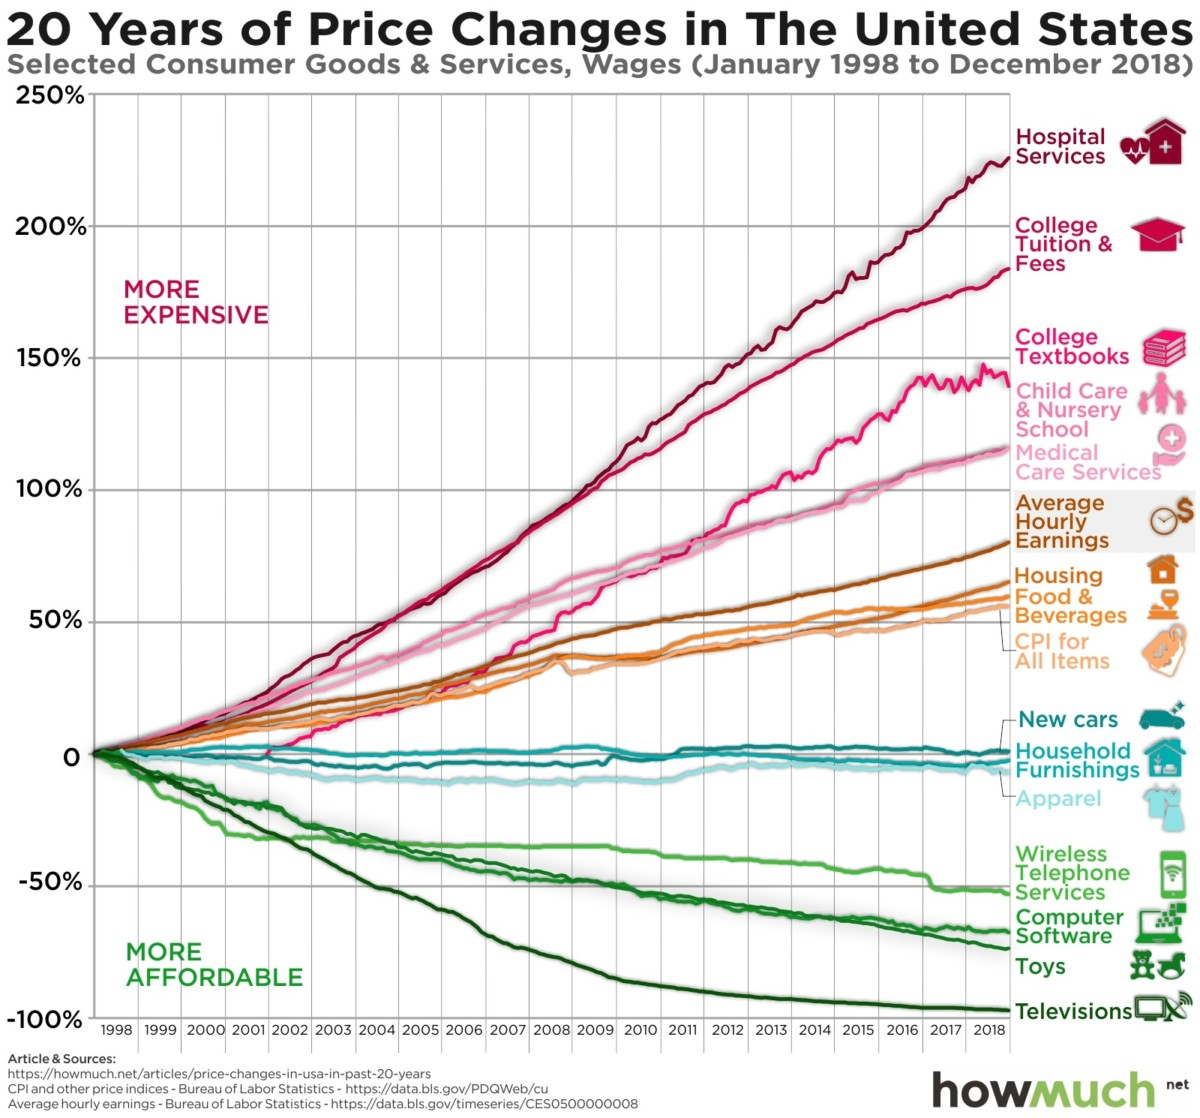 Price changes in the US from 1998 to 2018